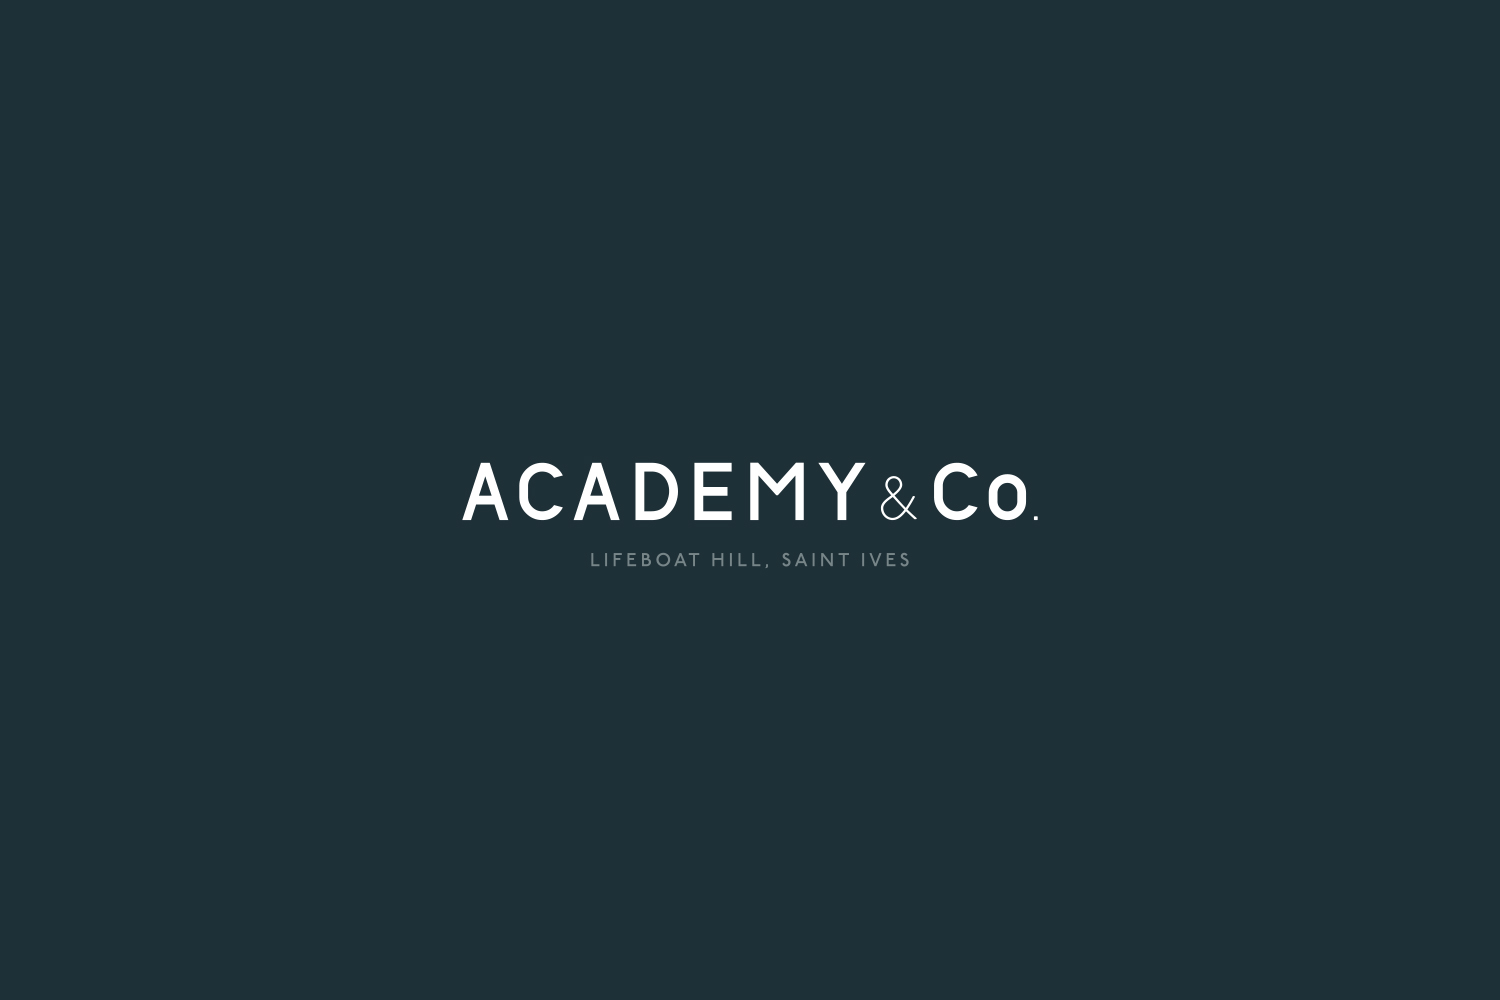 26.Becca_Allen_Academy_and_Co_Logo.jpg